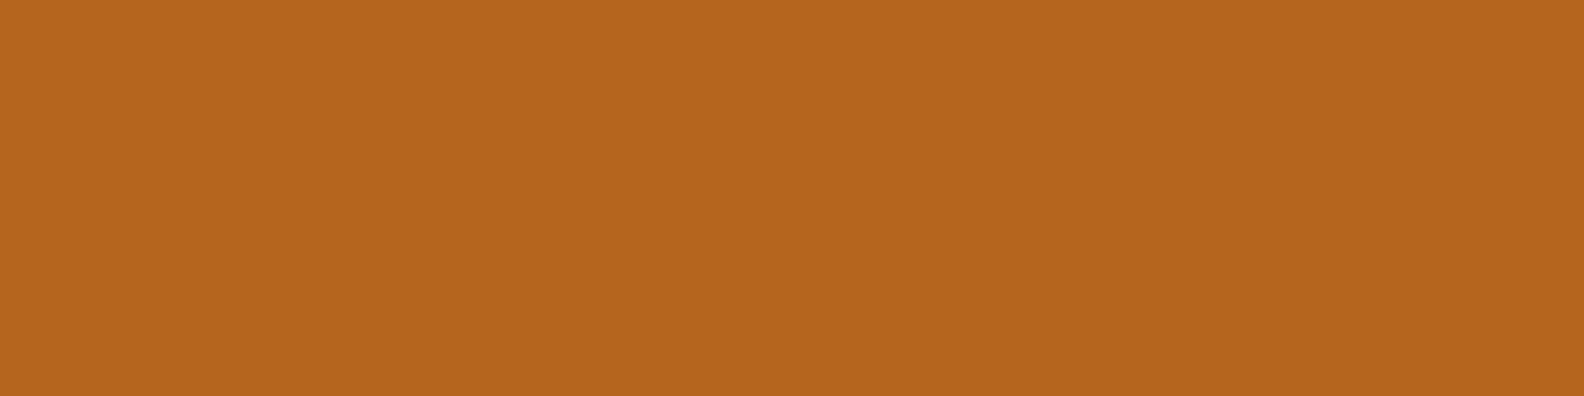 1584x396 Light Brown Solid Color Background